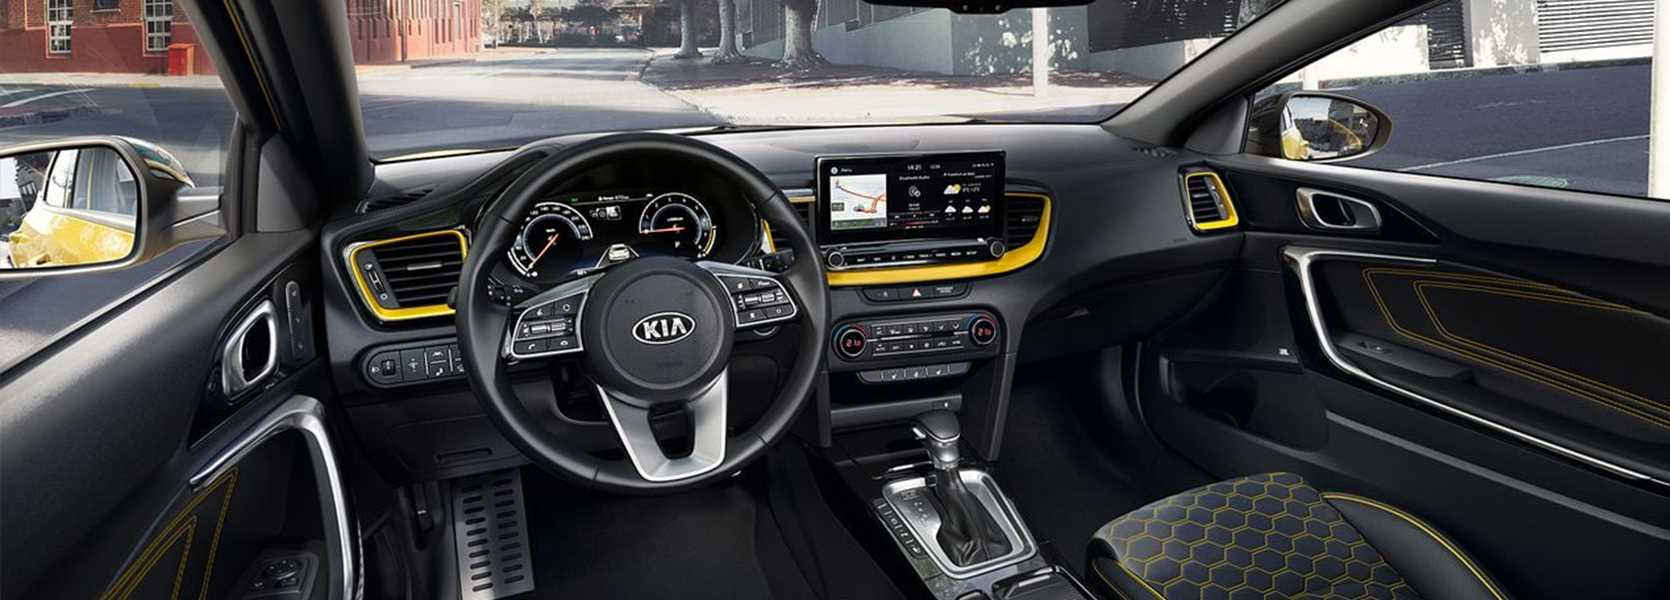 Kia Ceed Available at Canterbury Kia